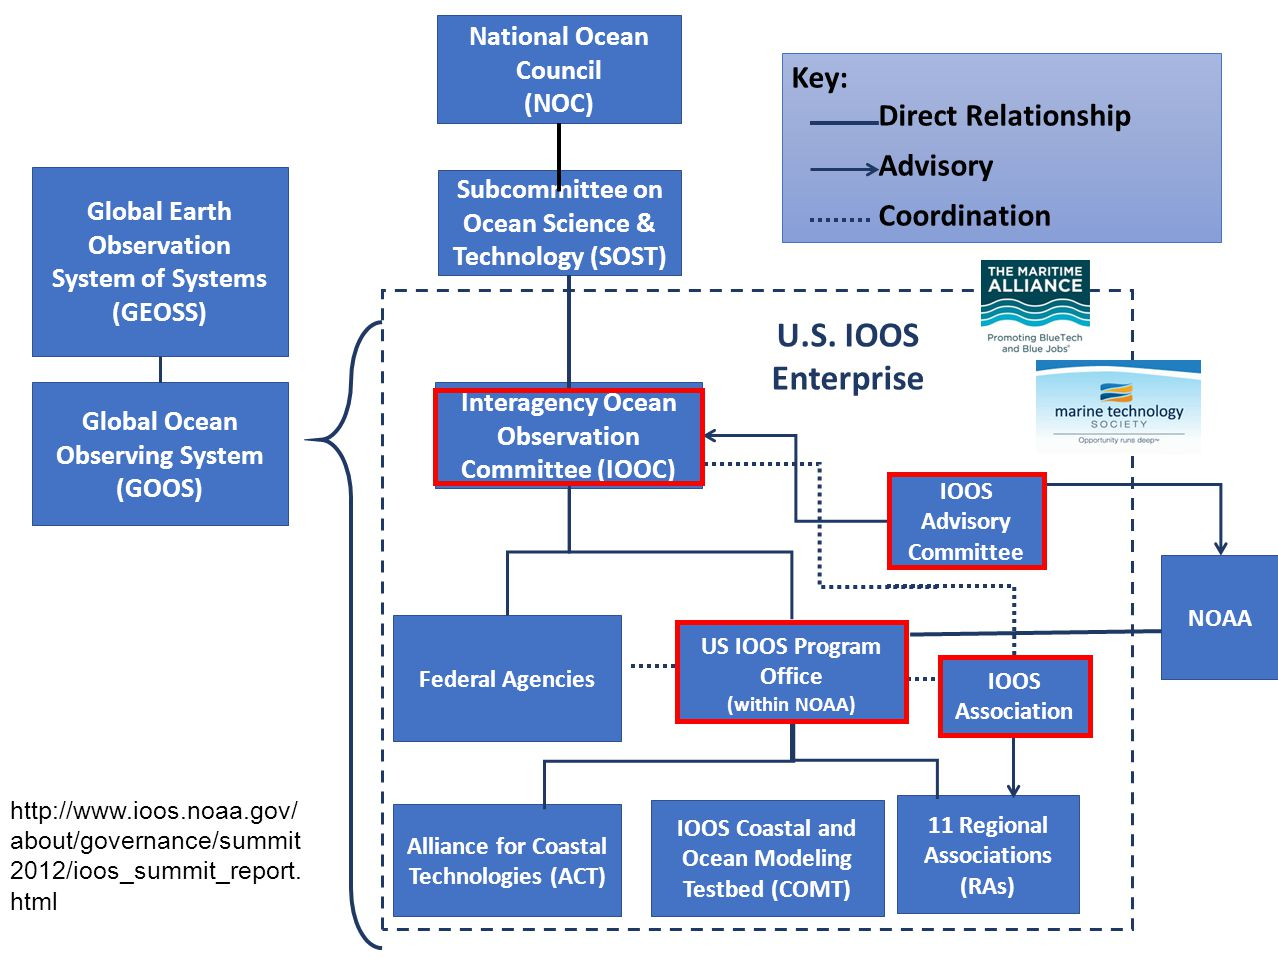 US IOOS Program Office (within NOAA) IOOS Advisory Committee Interagency Ocean Observation Committee (IOOC) Federal Agencies IOOS Association Subcommittee on Ocean Science & Technology (SOST) National Ocean Council (NOC) Alliance for Coastal Technologies (ACT) Global Earth Observation System of Systems (GEOSS) Global Ocean Observing System (GOOS) U.S.